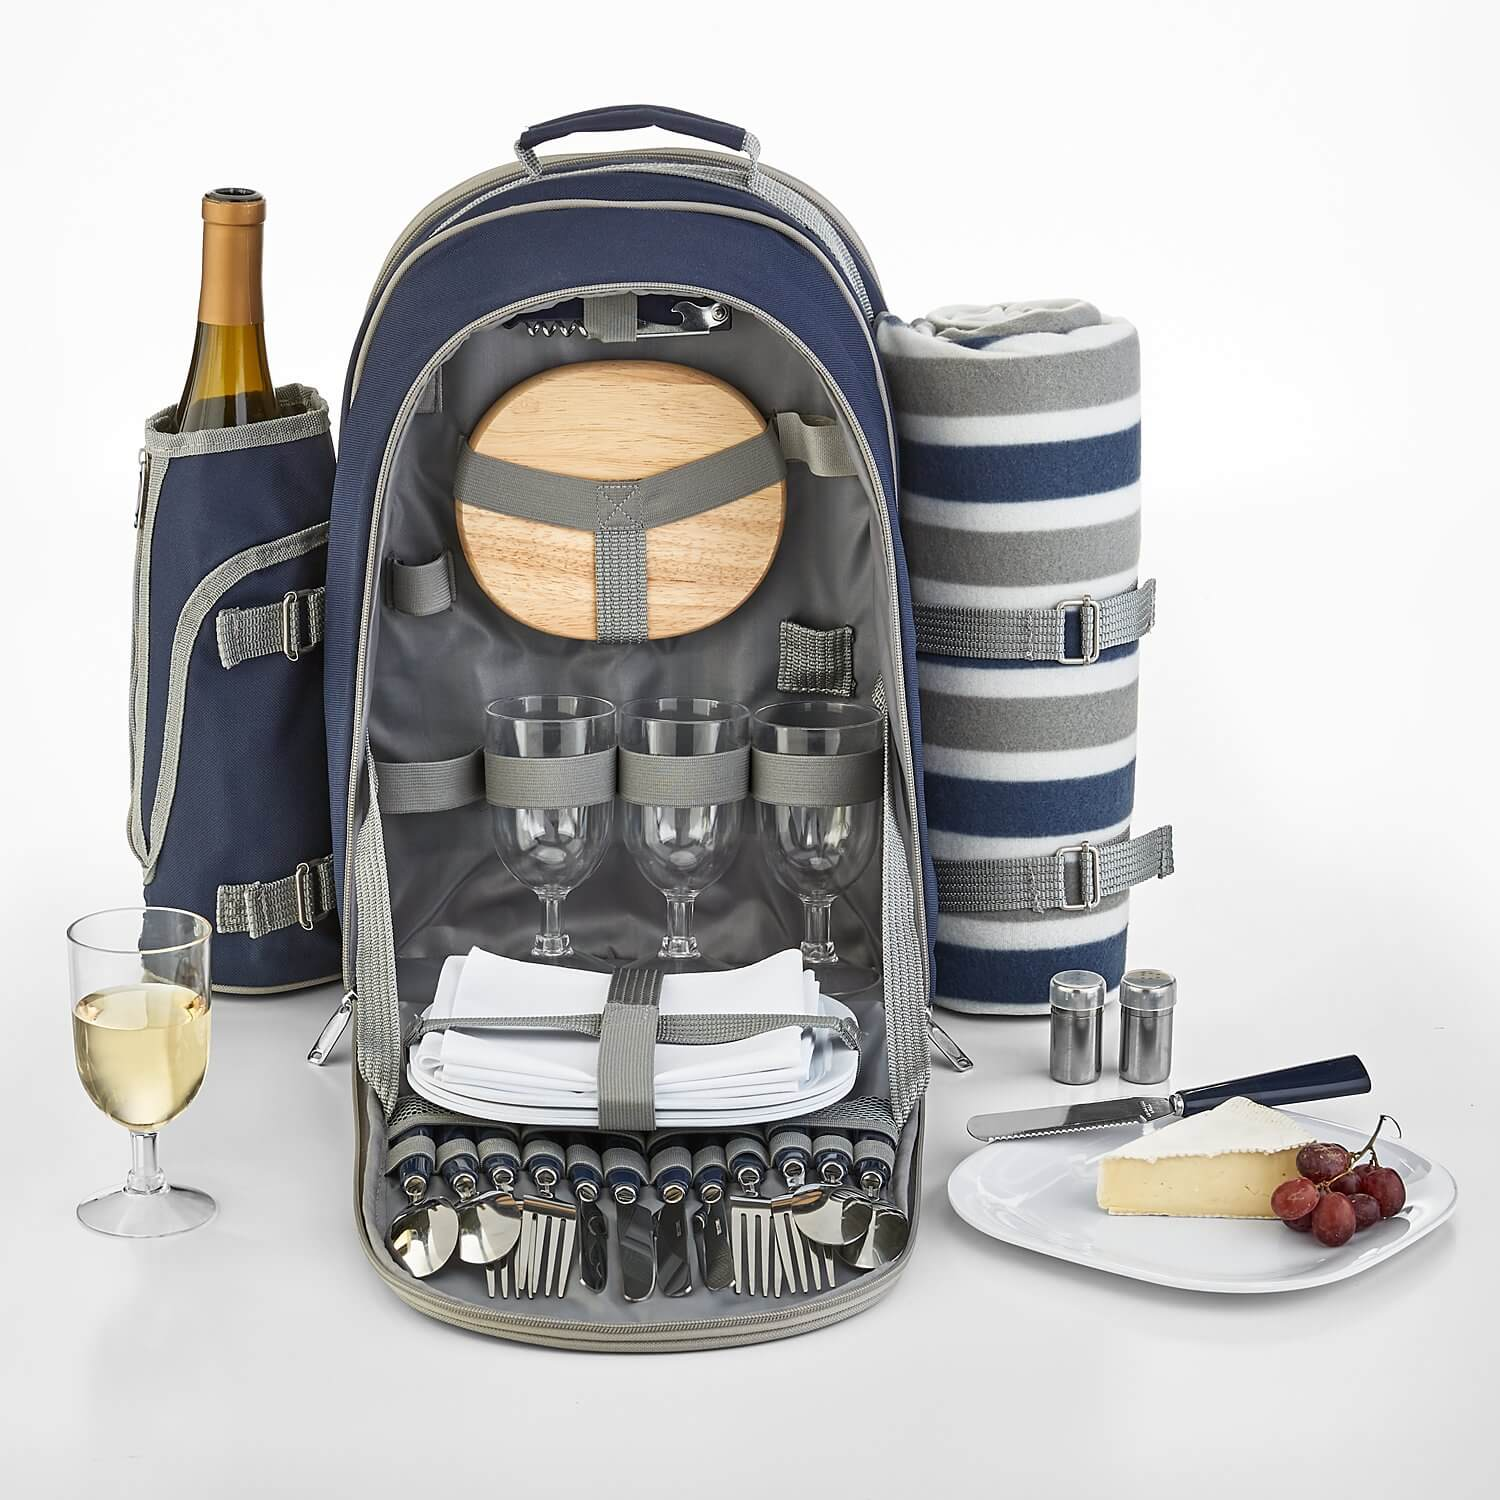 A backpack designed to carry items for a picnic.